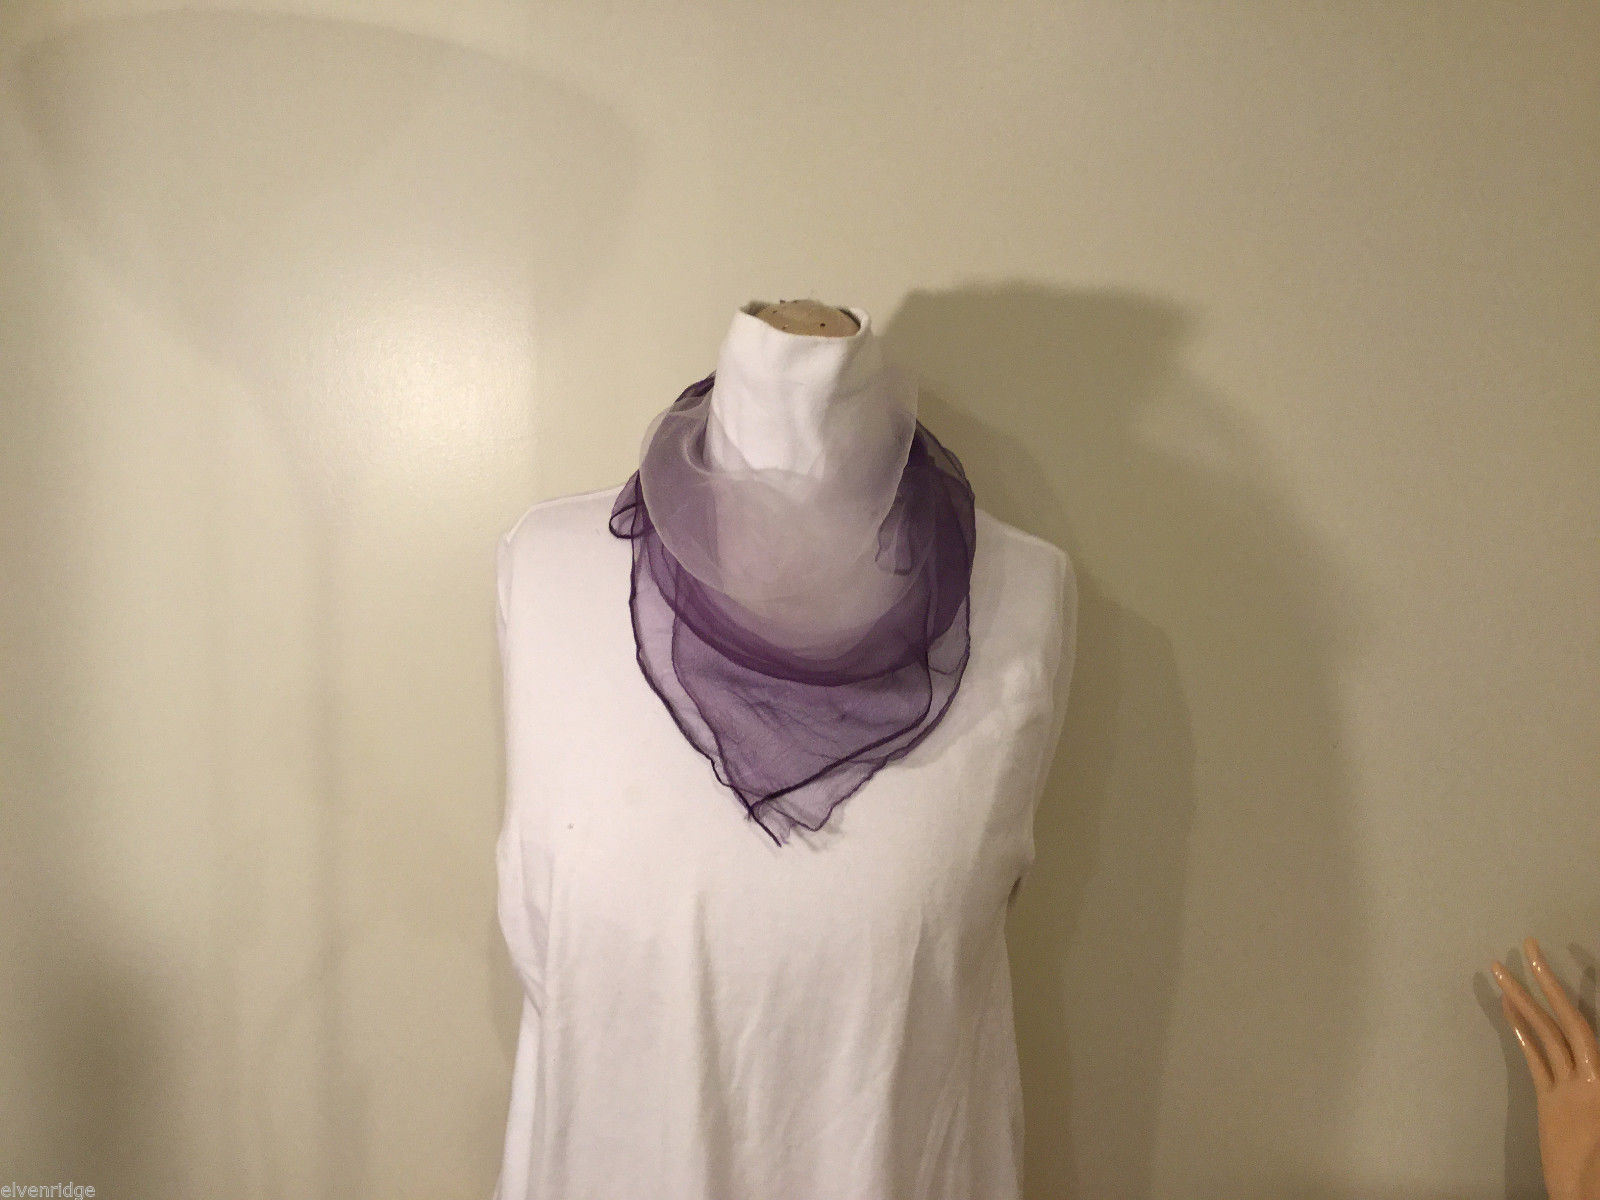 "Purple and White Sheer Small Square Scarf, 24"" by 24"" 100% Nylon"